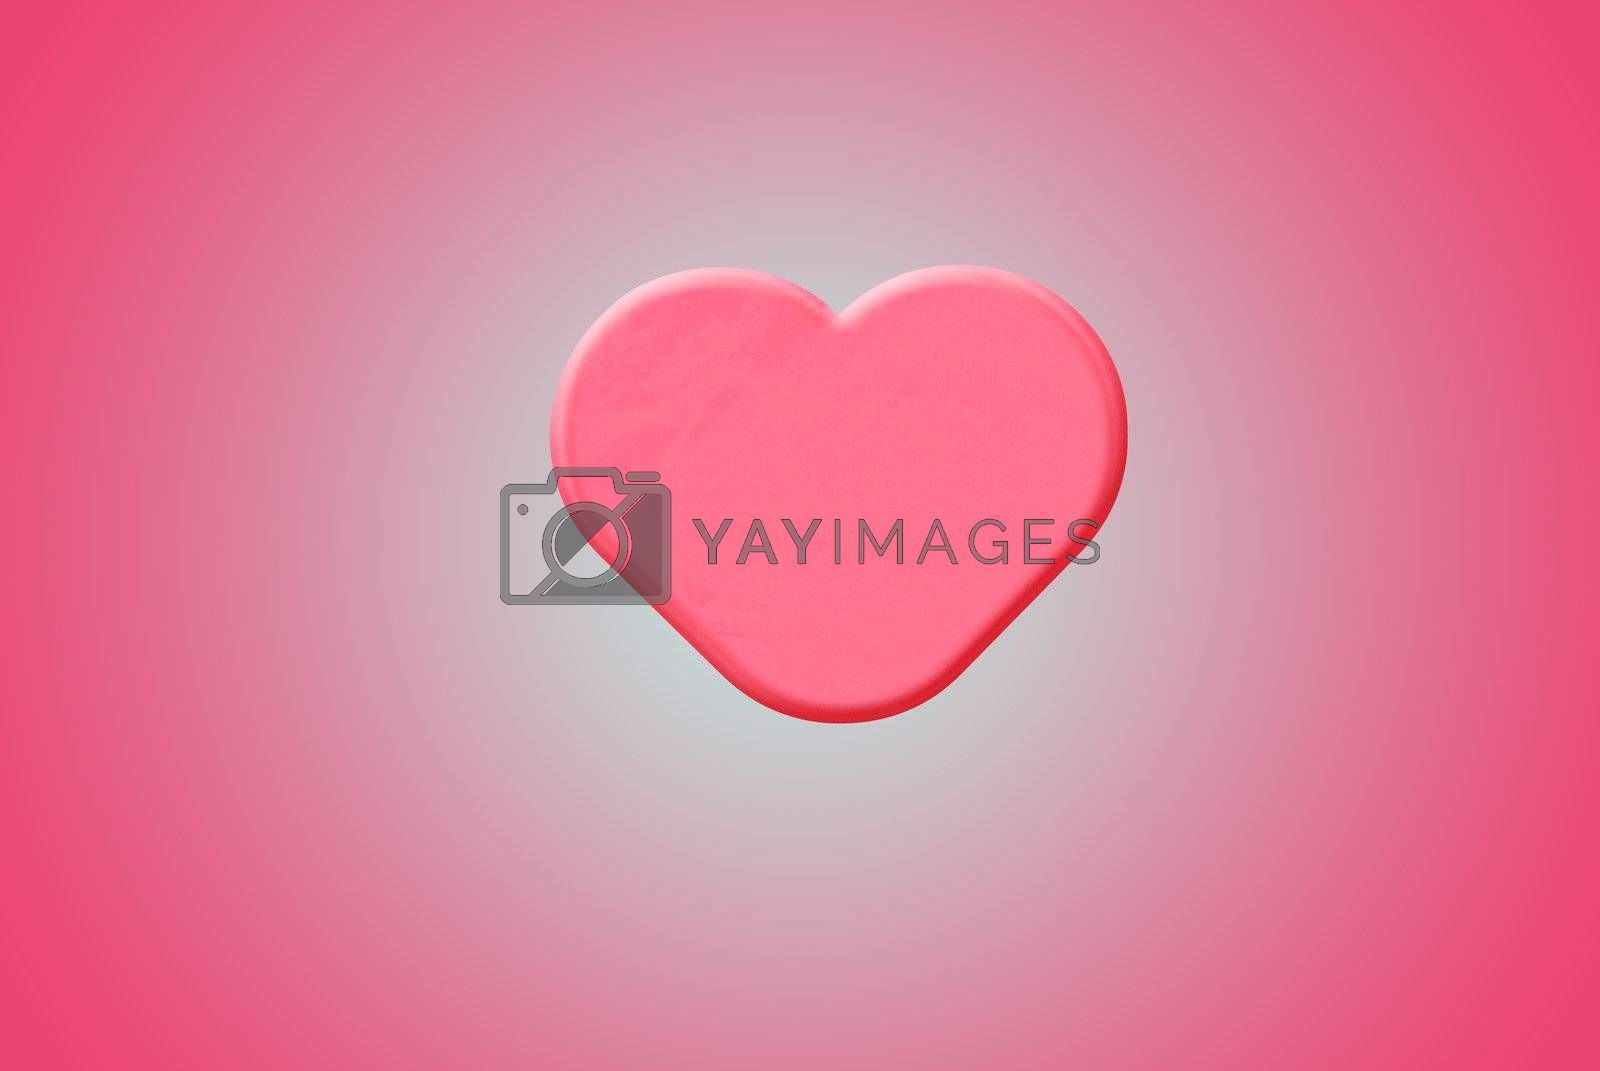 Sweet looking pink heart with line background, can be use for various love related concepts, design and print out.